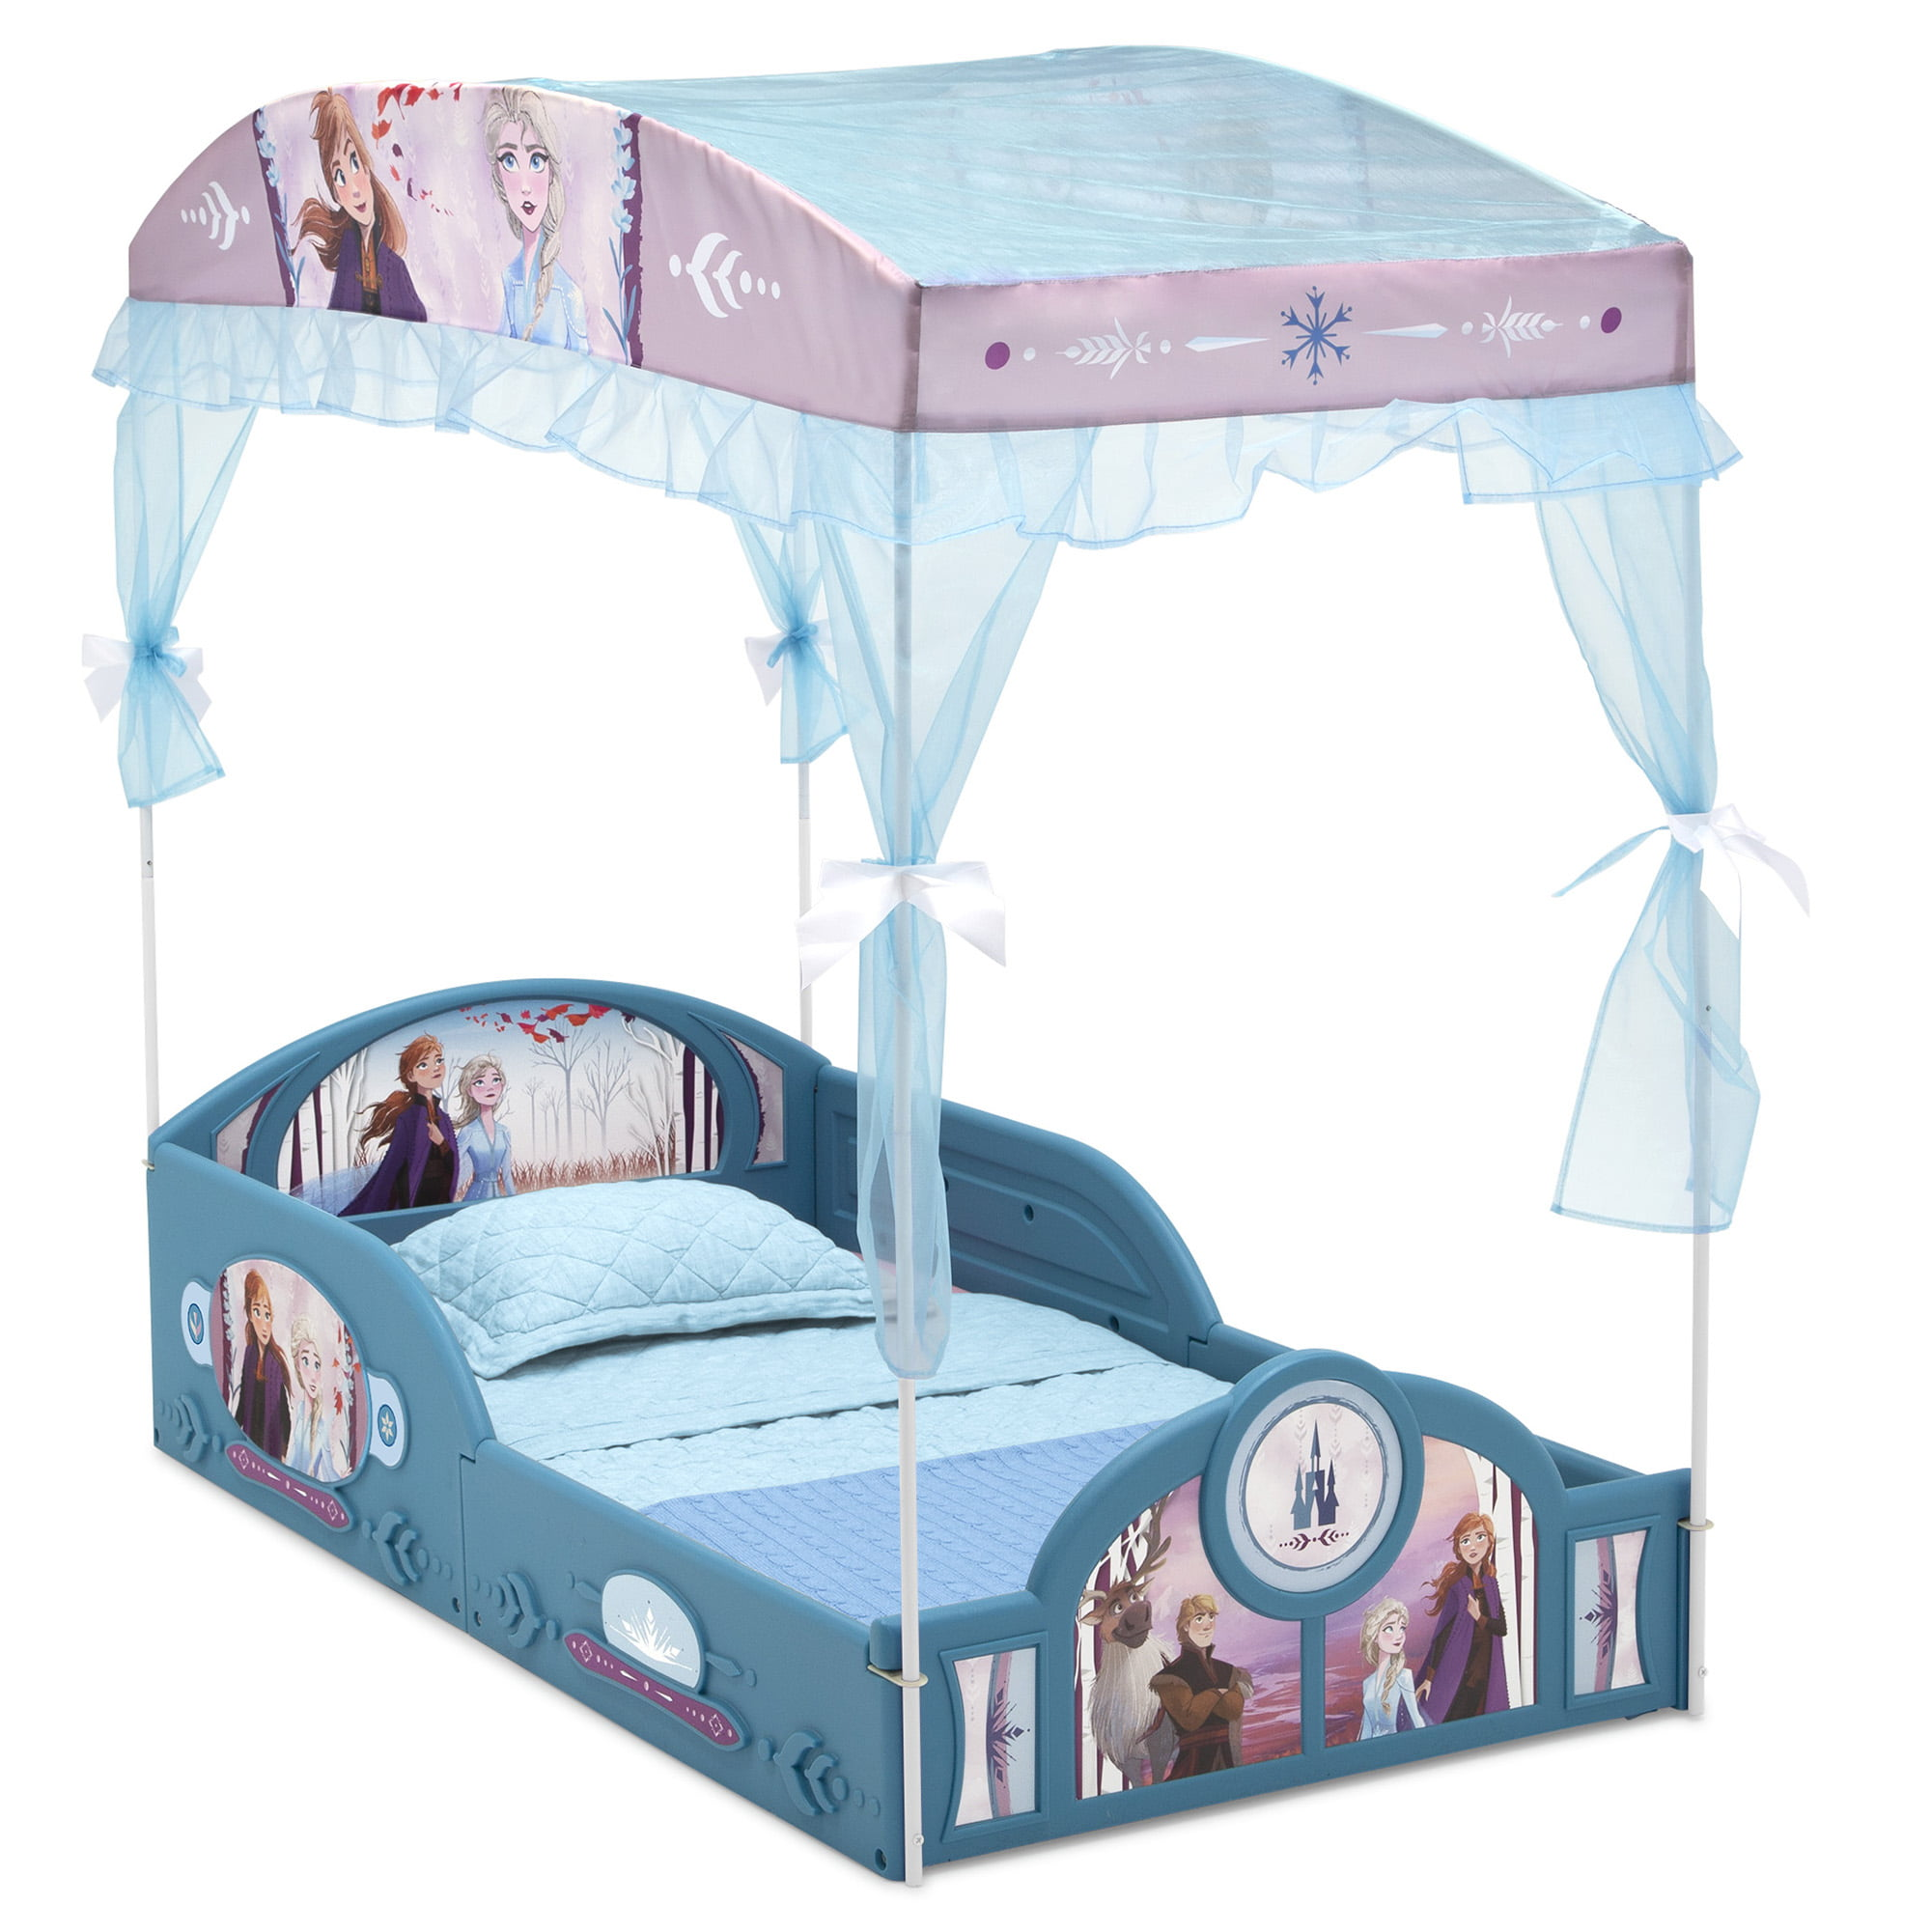 - Disney Frozen II Plastic Sleep And Play Toddler Bed With Canopy By